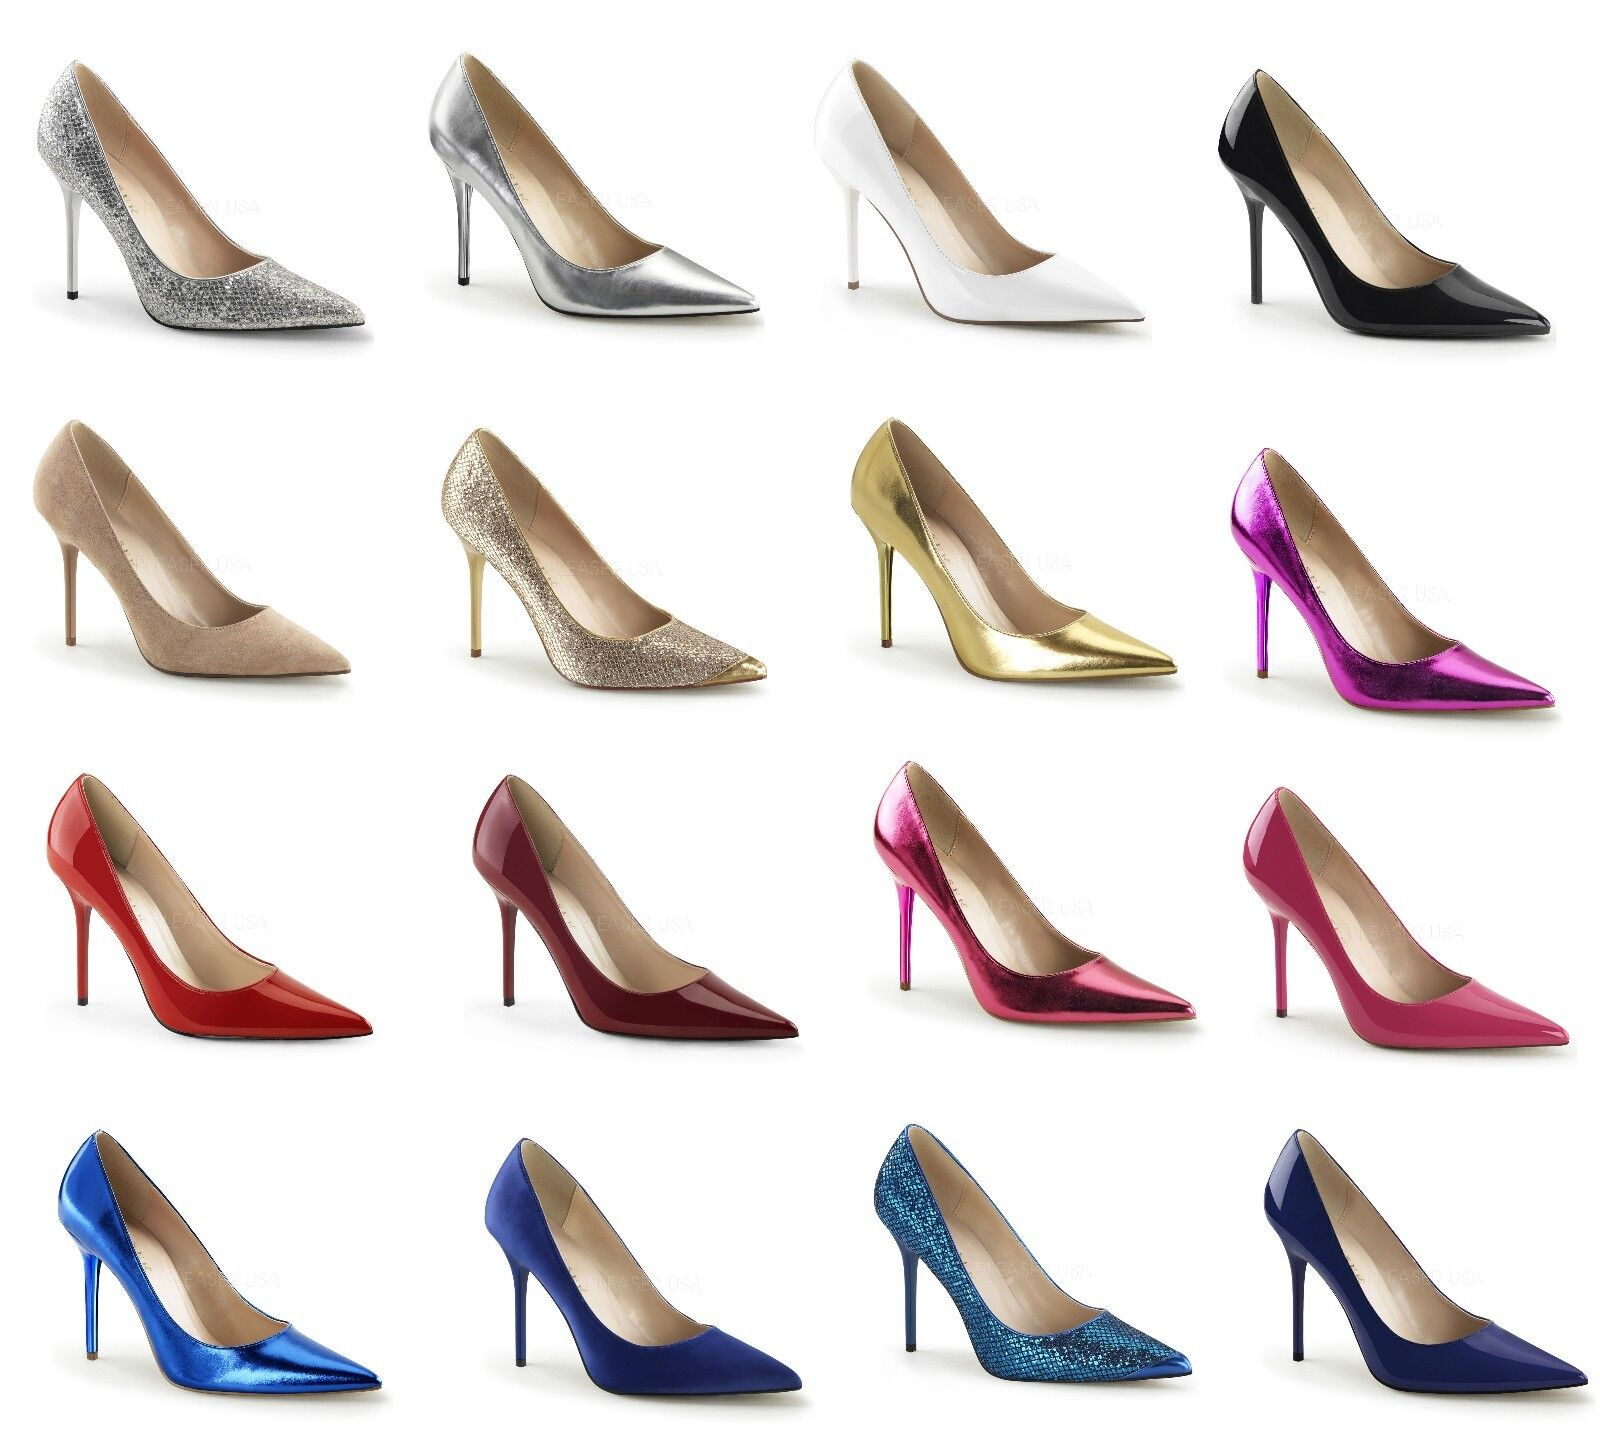 PLEASER CLASSIQUE-20 Sexy 4  Pointed-Toe Pumps Size 5-16